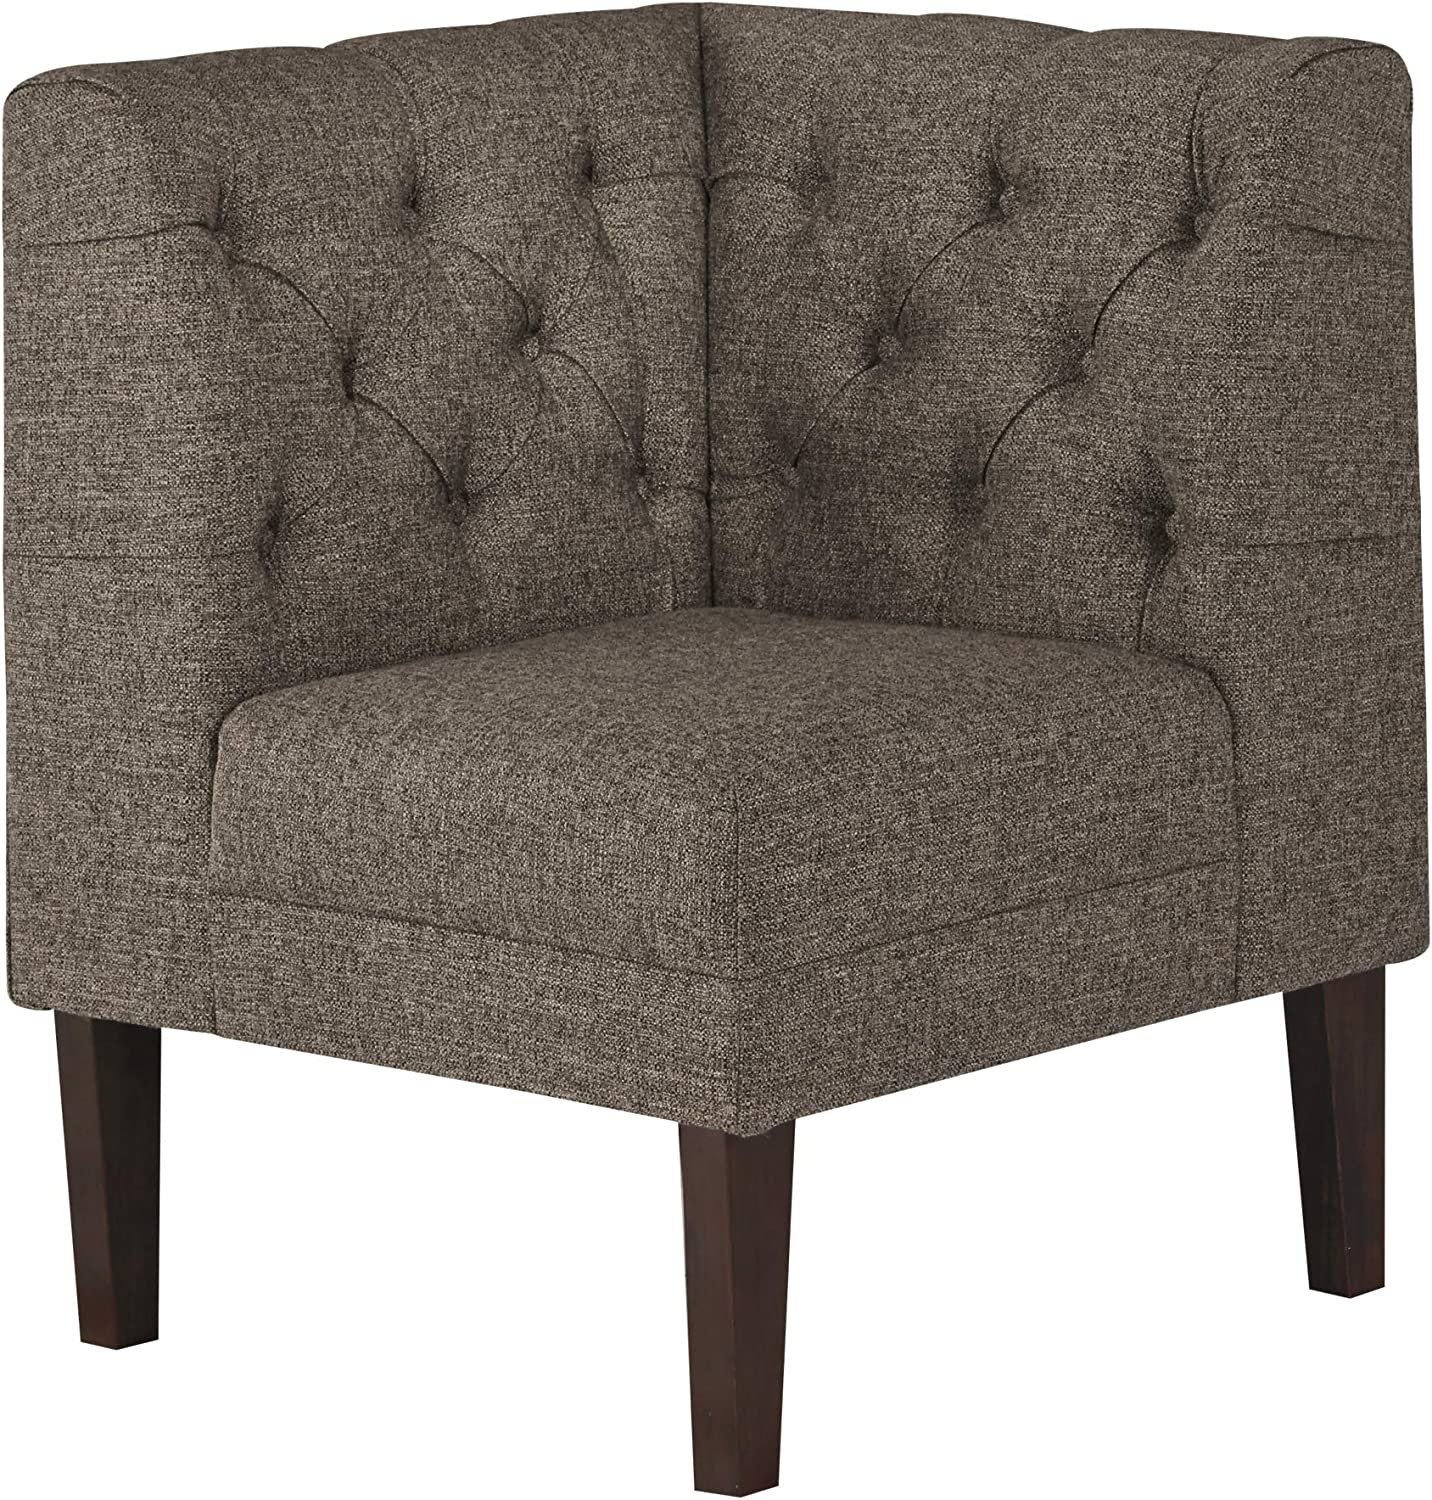 Medium Brown Casual Style Signature Design By Ashley Tripton Corner Upholstered Bench